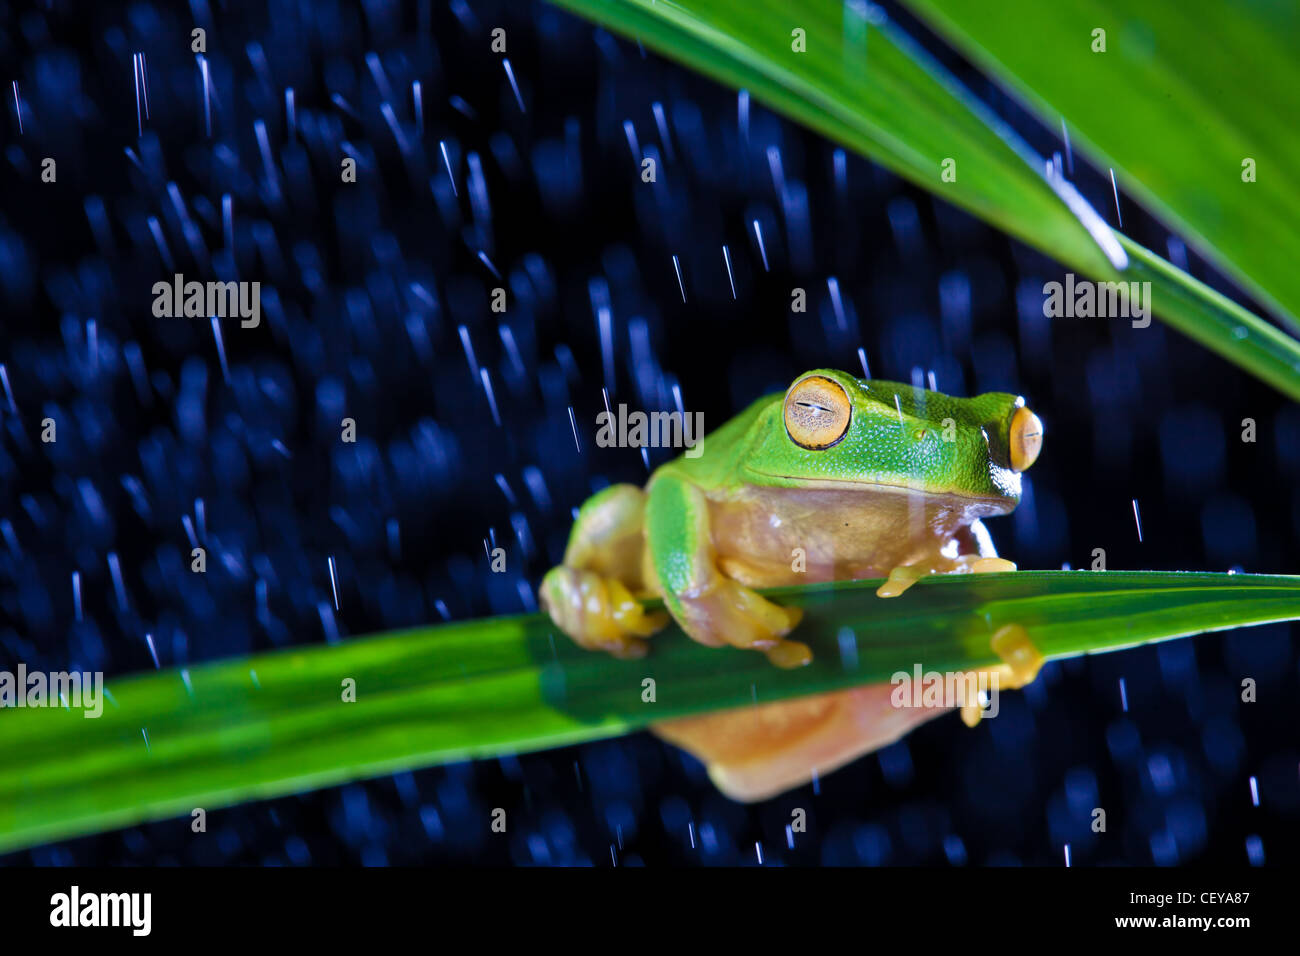 Little green tree frog sitting on green leaf in rain - Stock Image